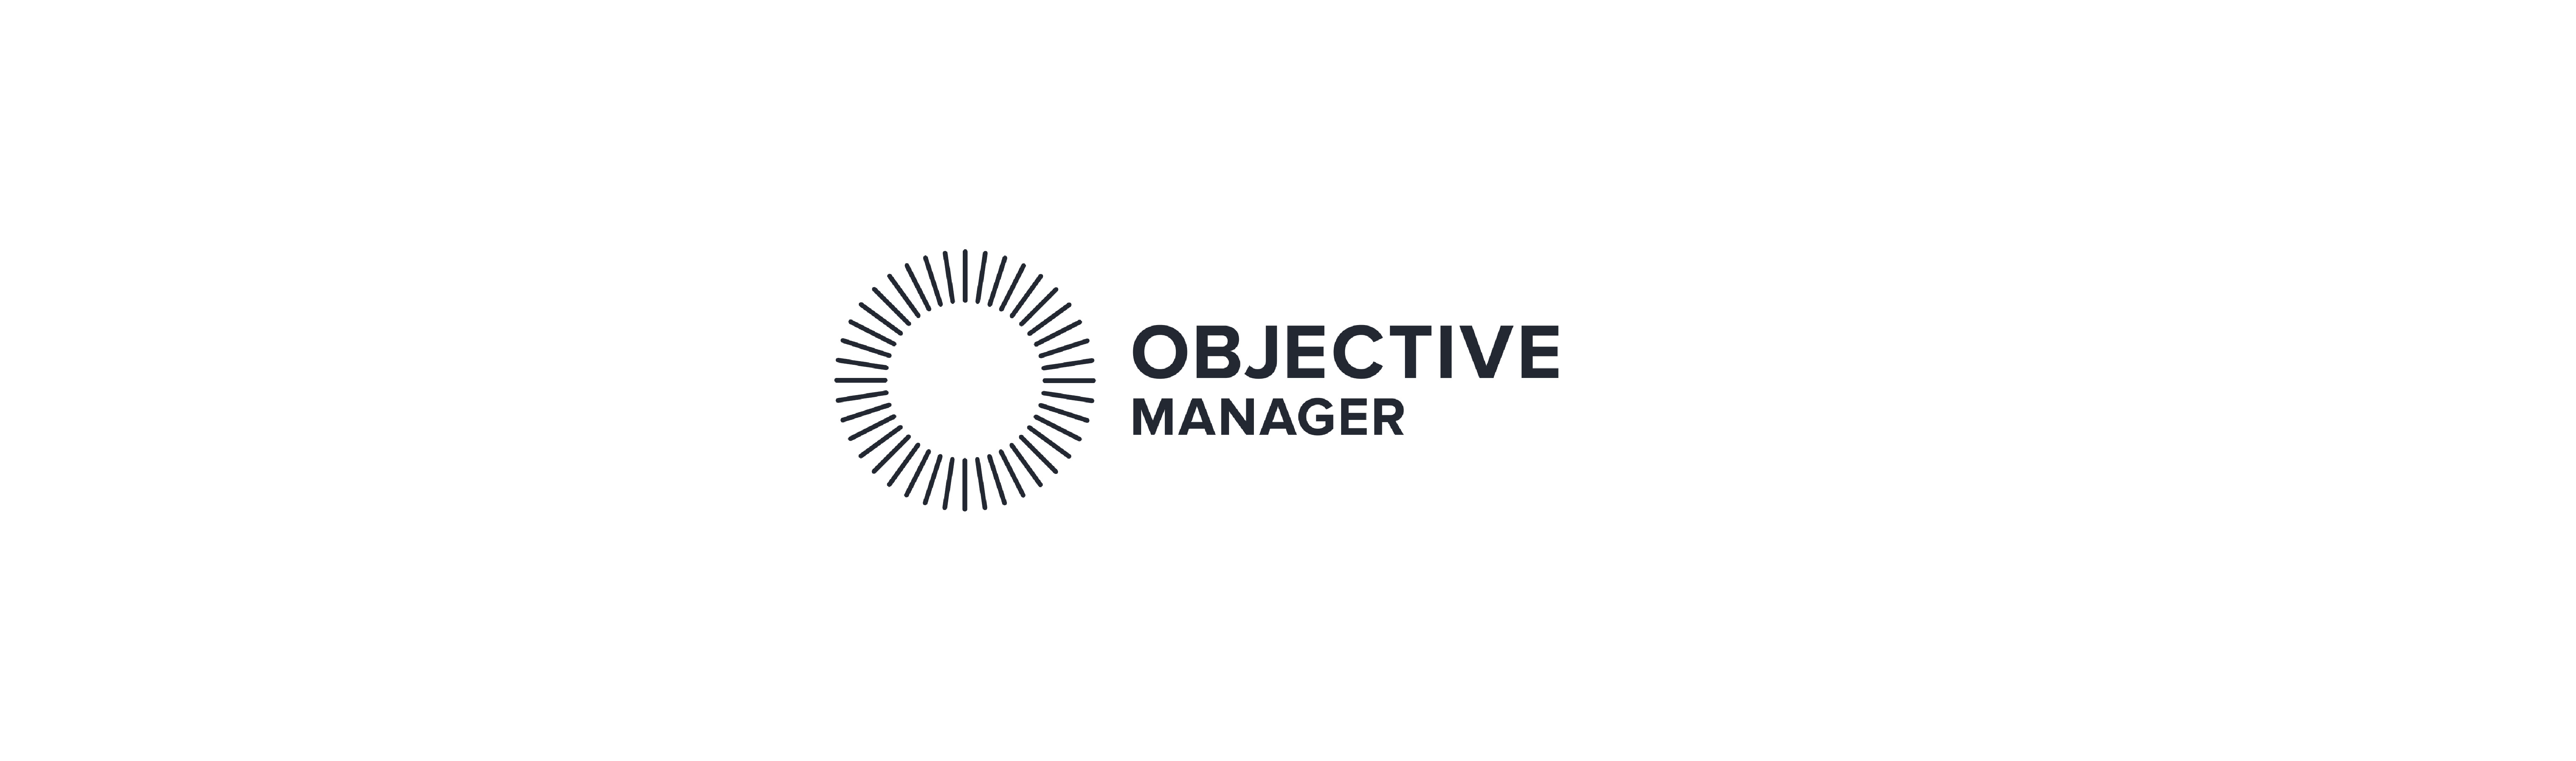 objective manager